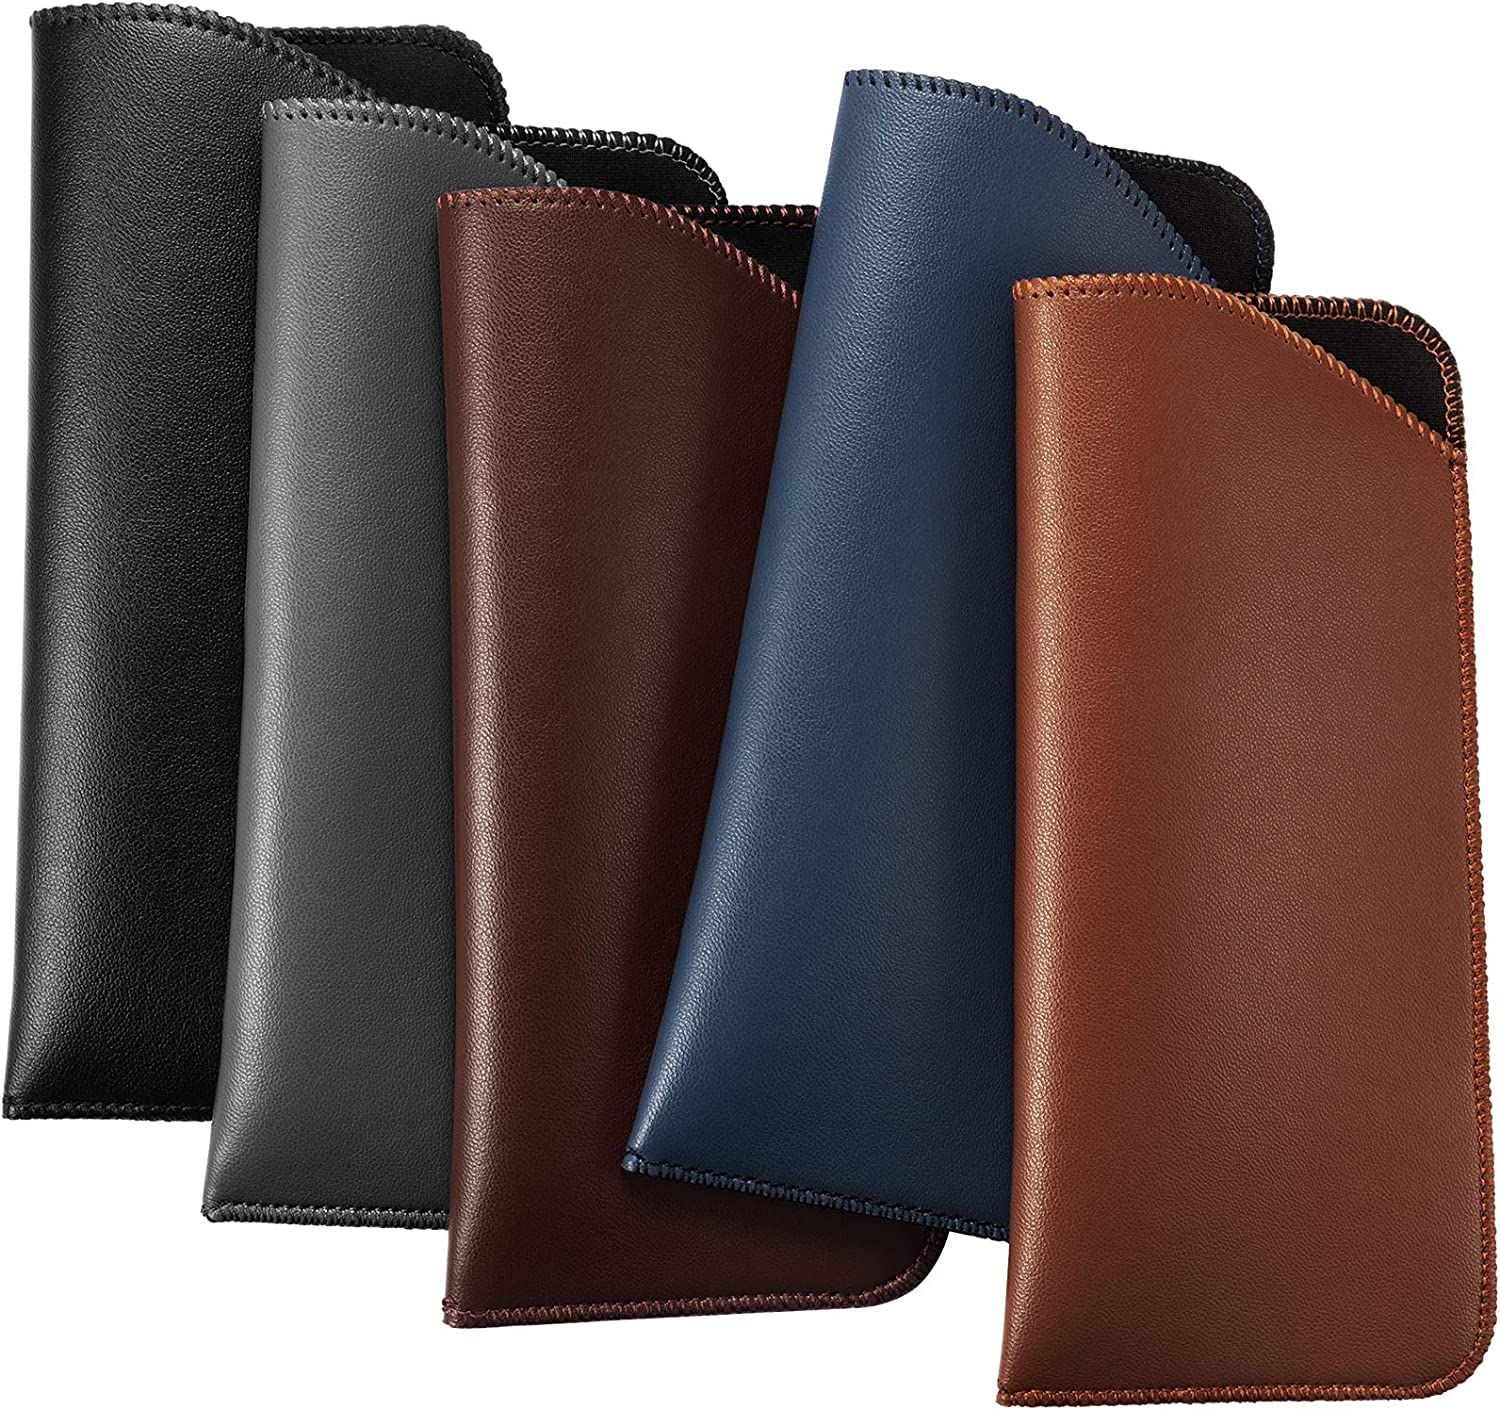 5 Pieces Slip In Eyeglass Pouch Artificial Leather Slim Travel Sunglasses Case Holder Leather Eyewear Sleeve